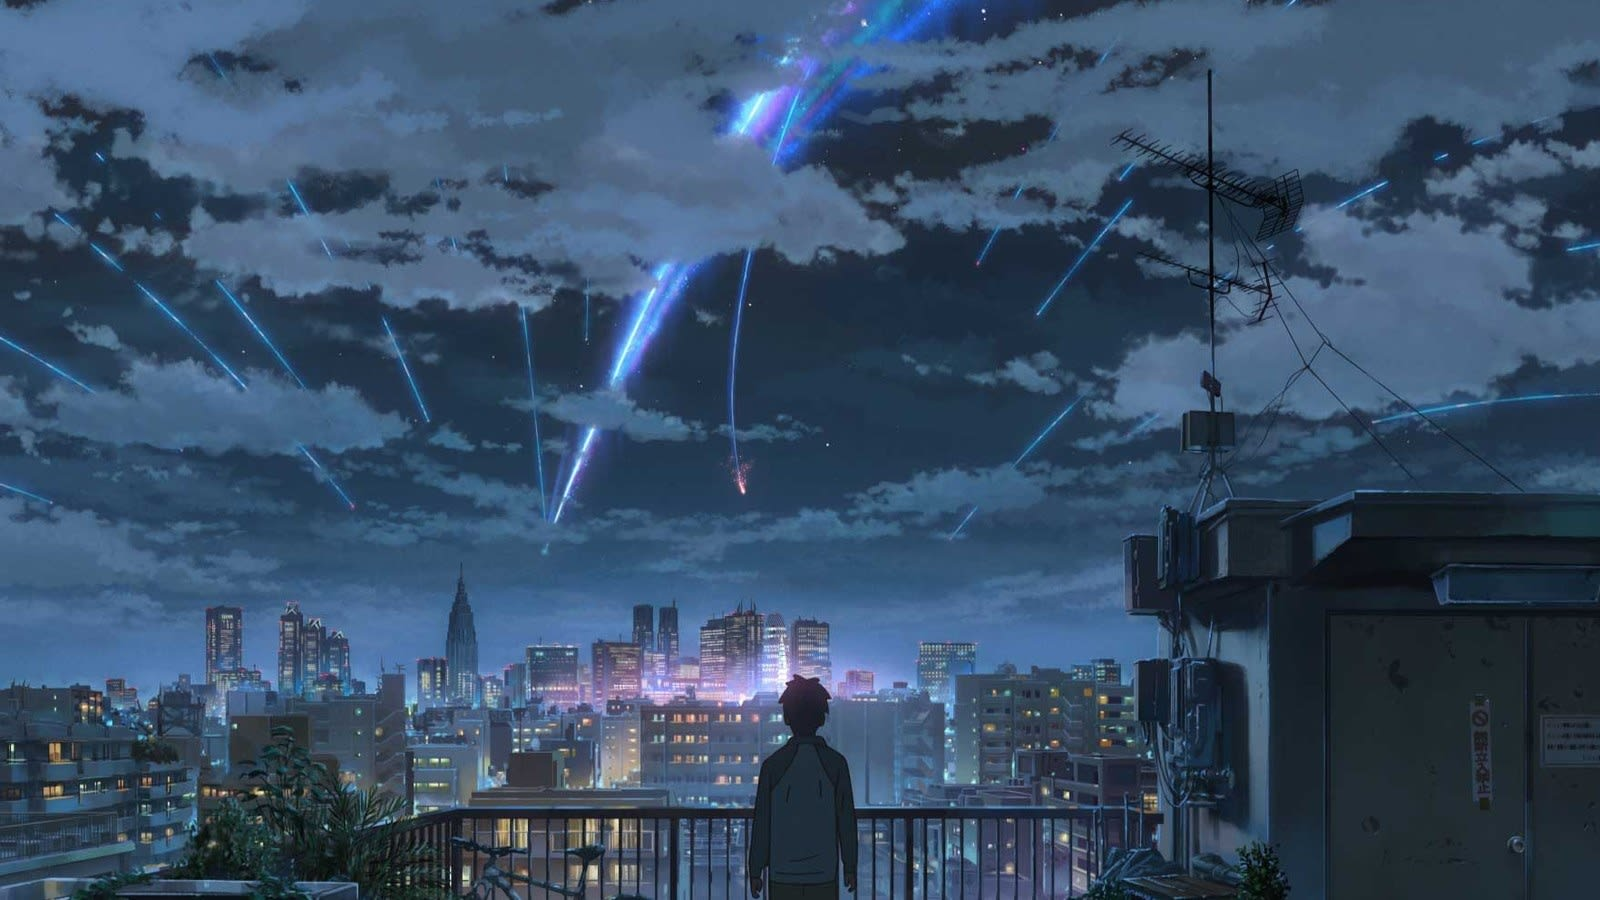 A character standing on a rooftop and watching shooting stars in the night sky